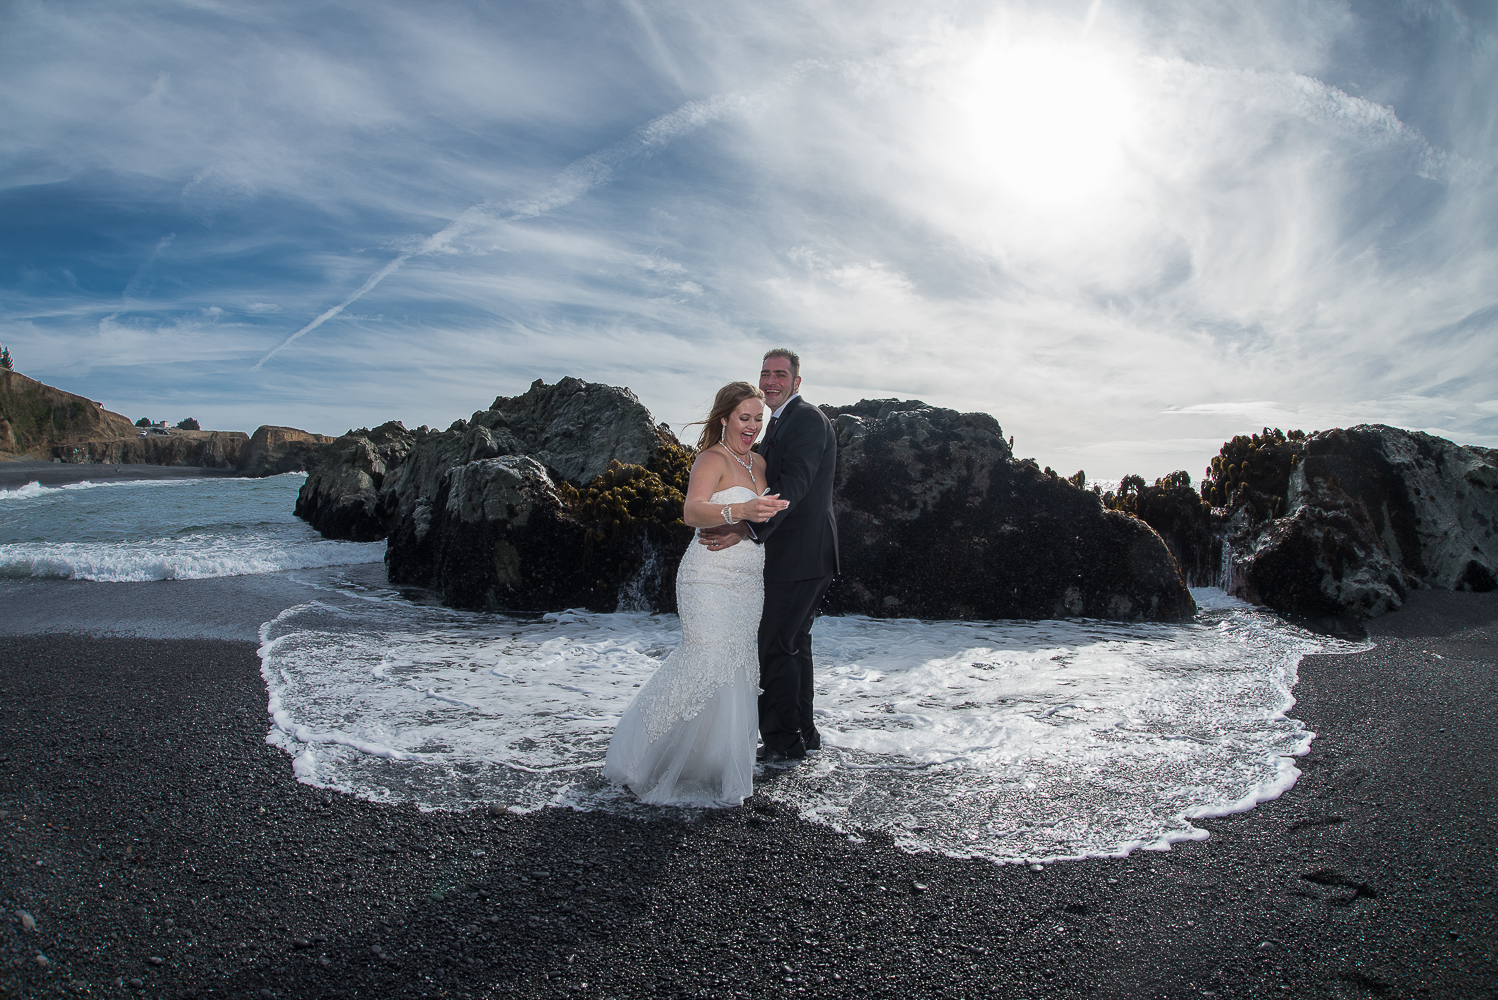 Shelter Cove-Intimate Destination beach Wedding-Parky's Pics Photography-Humboldt County_-24.jpg